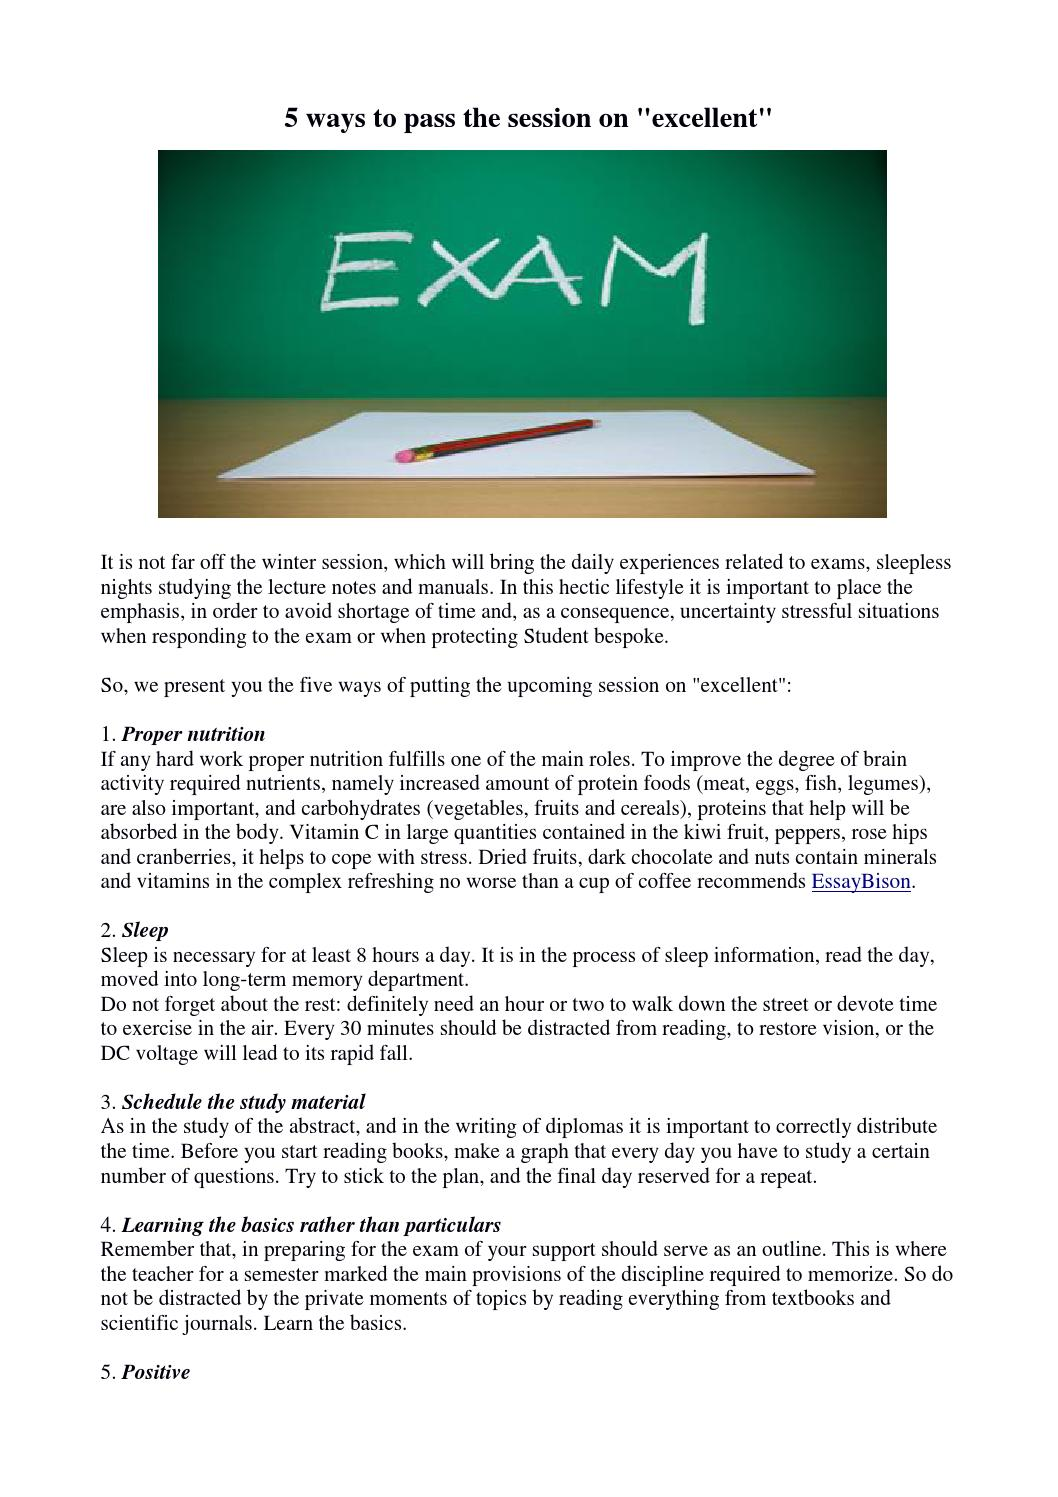 Diploma protection: how to prepare for excellent